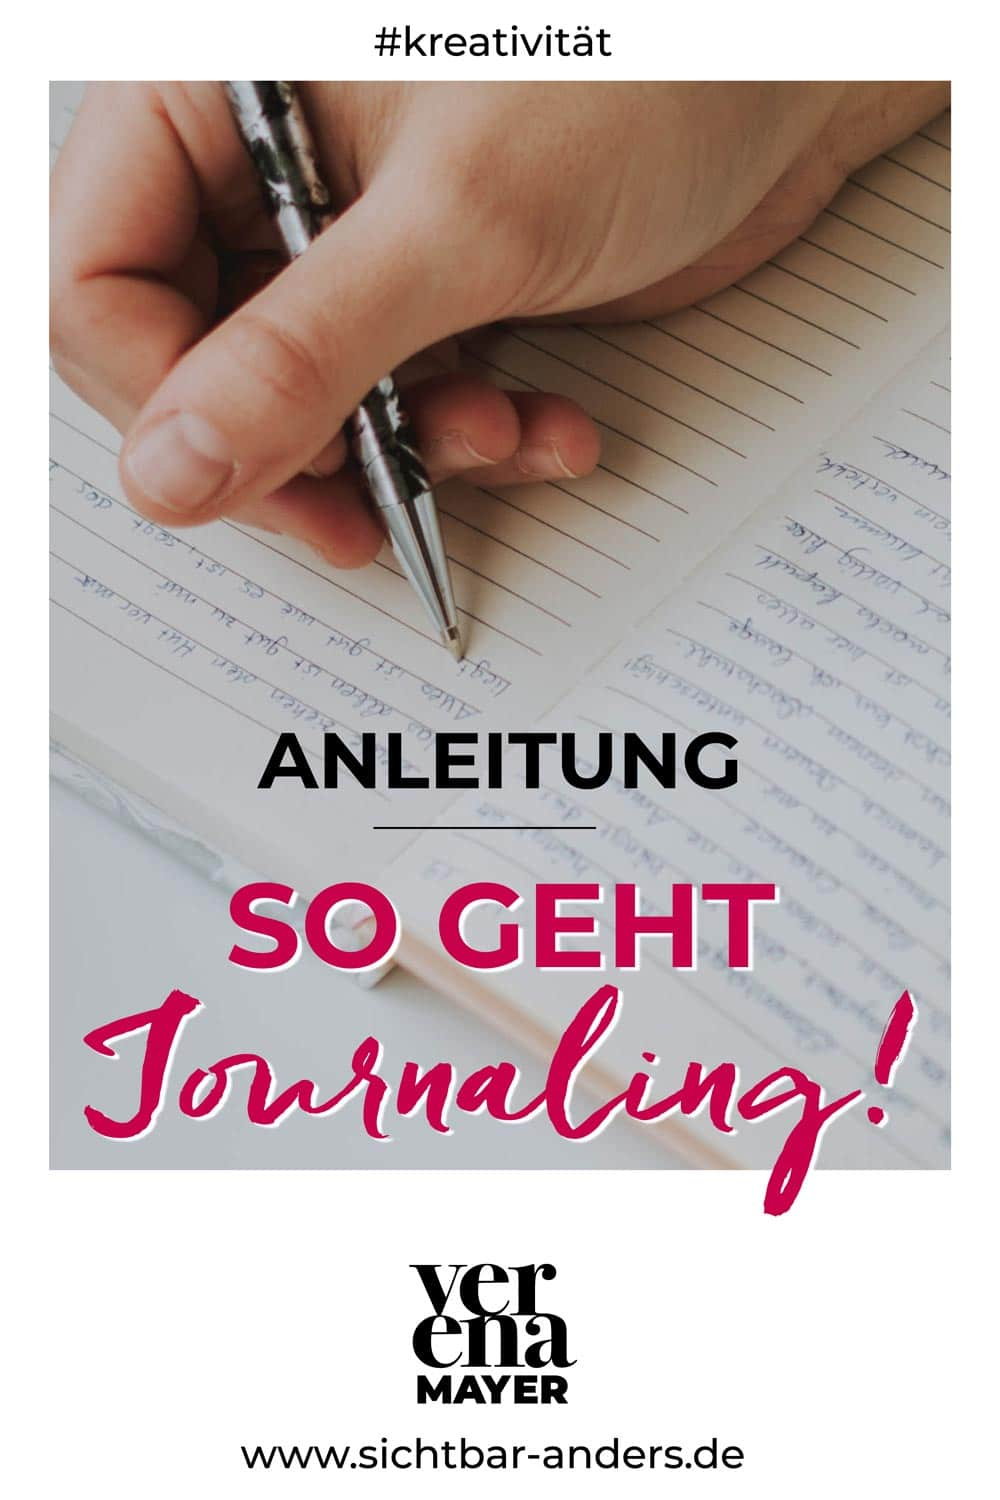 So geht Journaling!